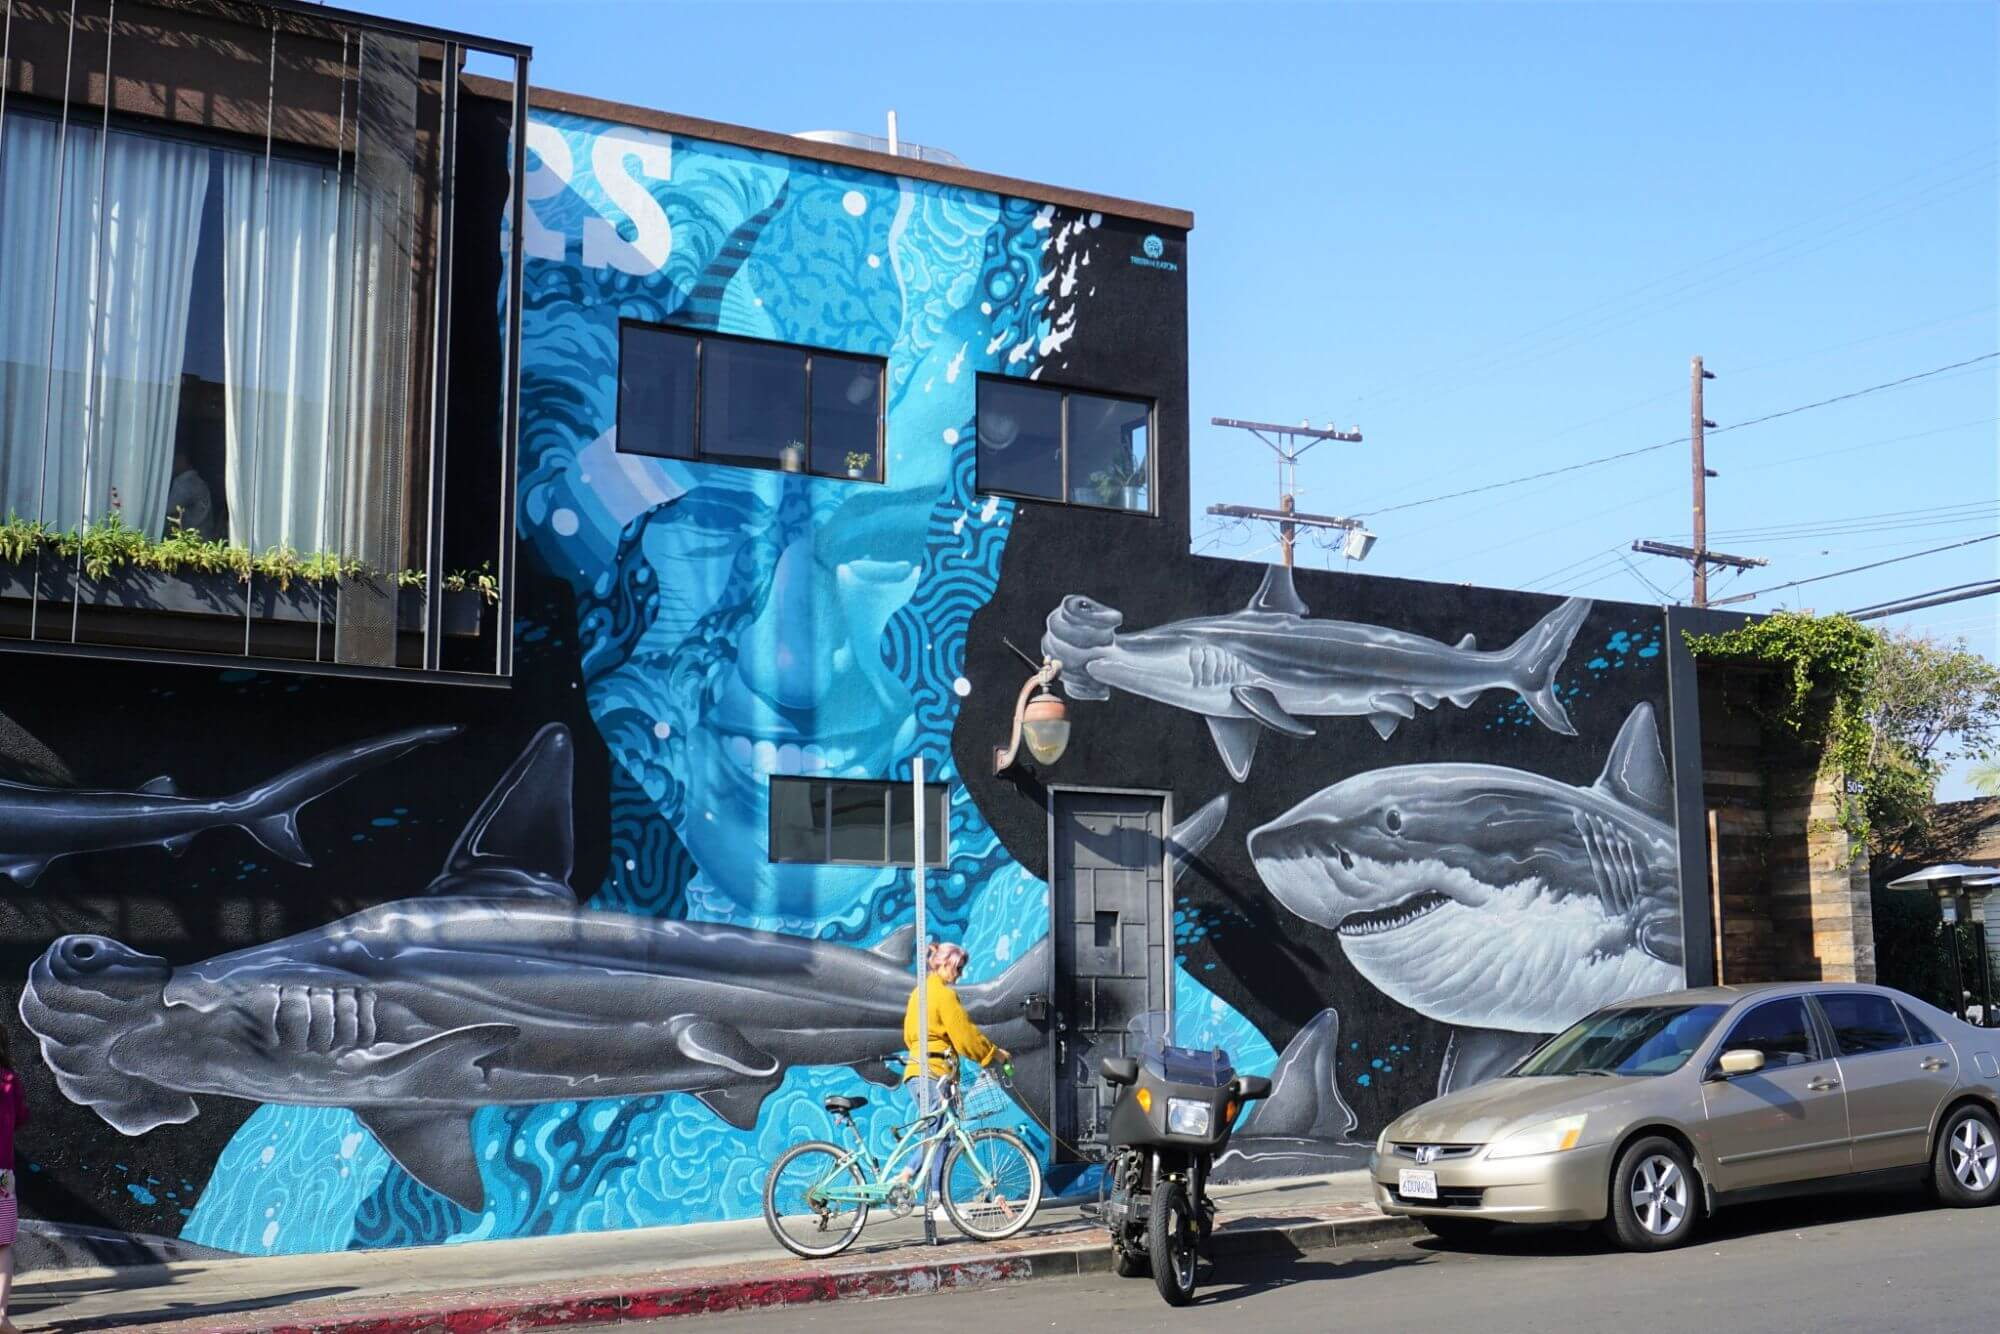 Mural on a Venice Beach buidling